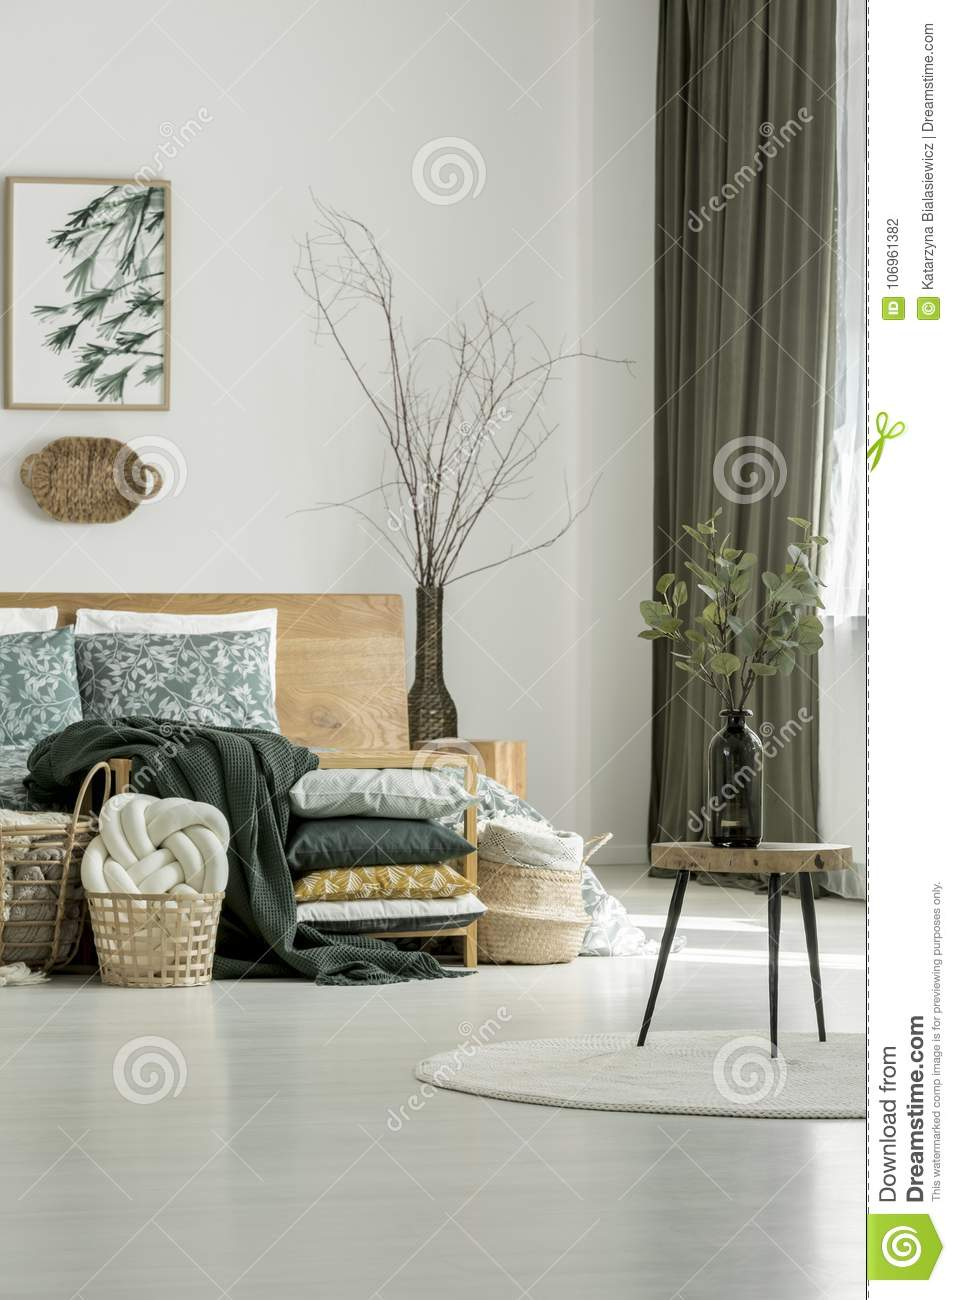 Enjoyable Wooden Stool In Olive Bedroom Stock Photo Image Of Pattern Download Free Architecture Designs Scobabritishbridgeorg